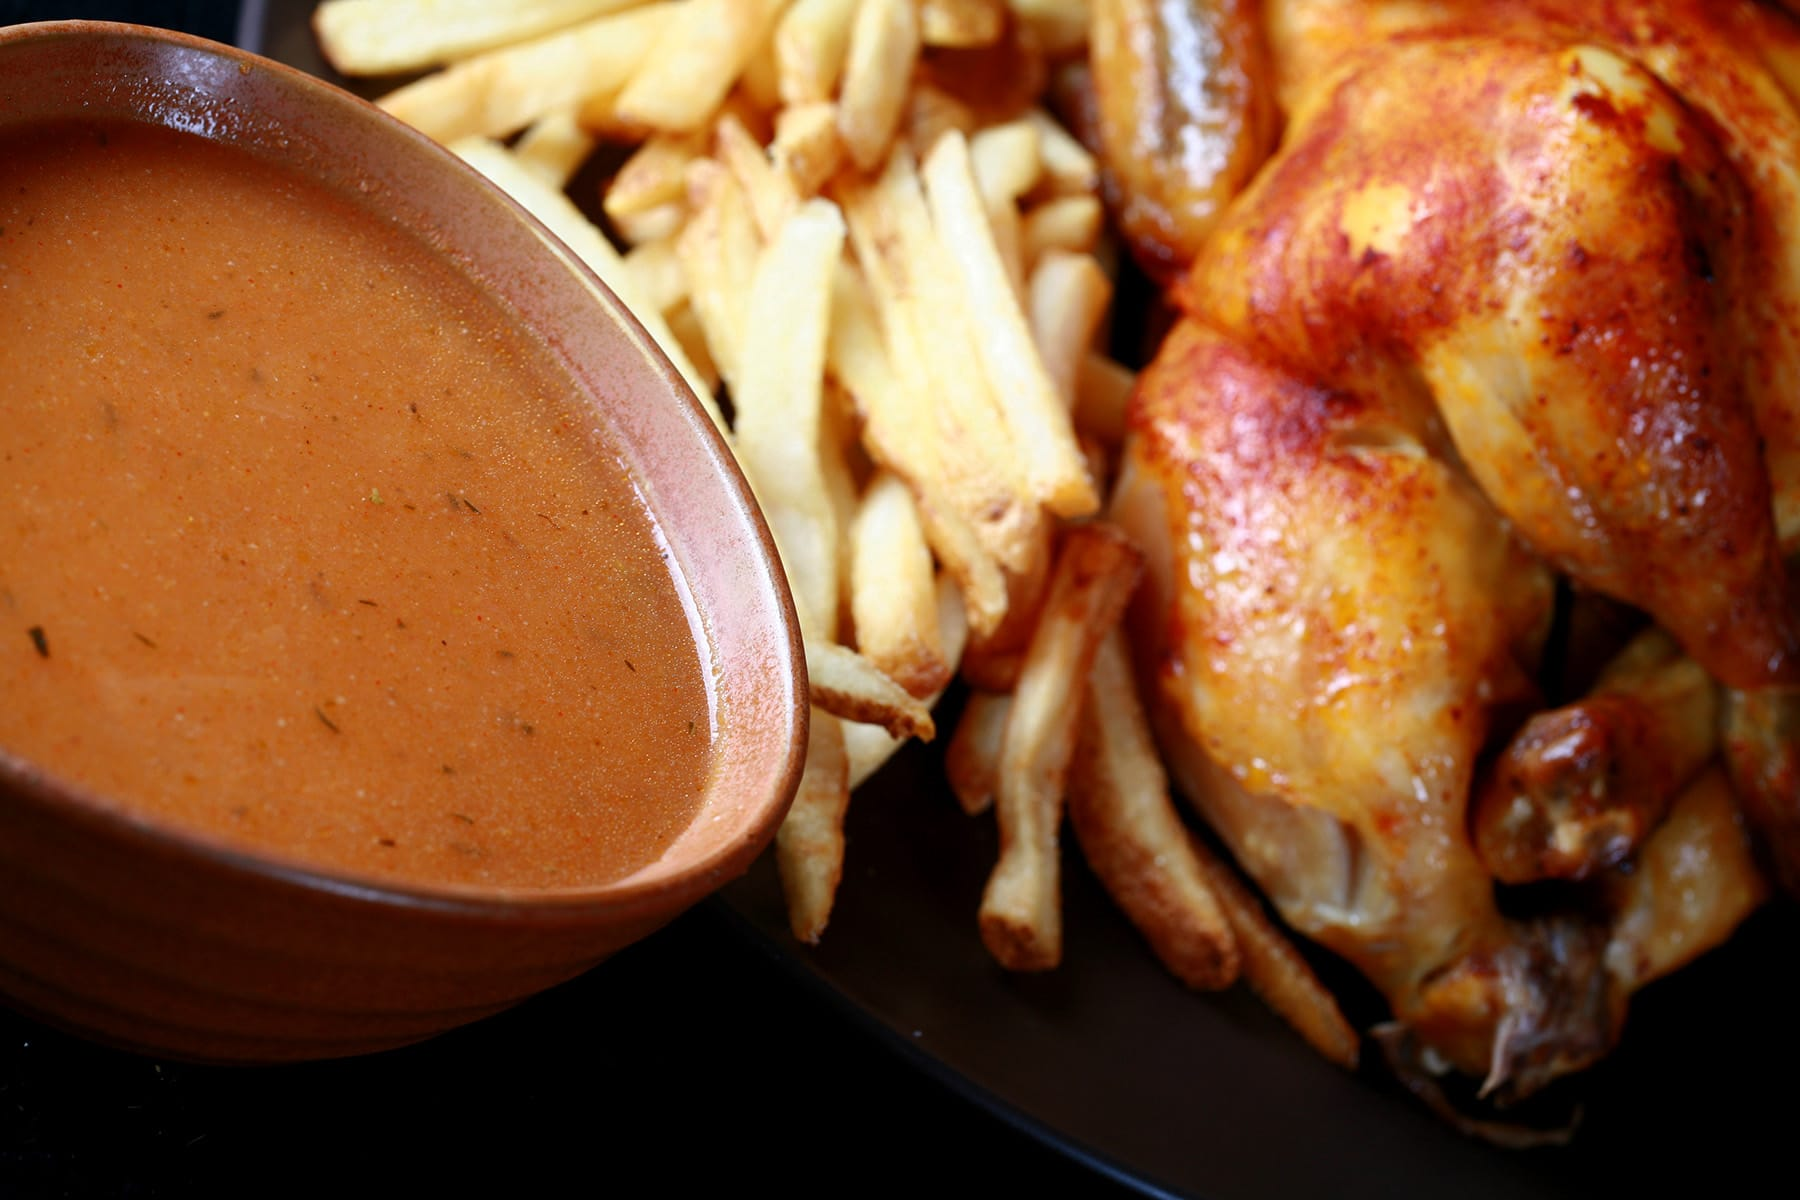 A large bowl of homemade Swiss Chalet Sauce next to a roasted chicken and fries.